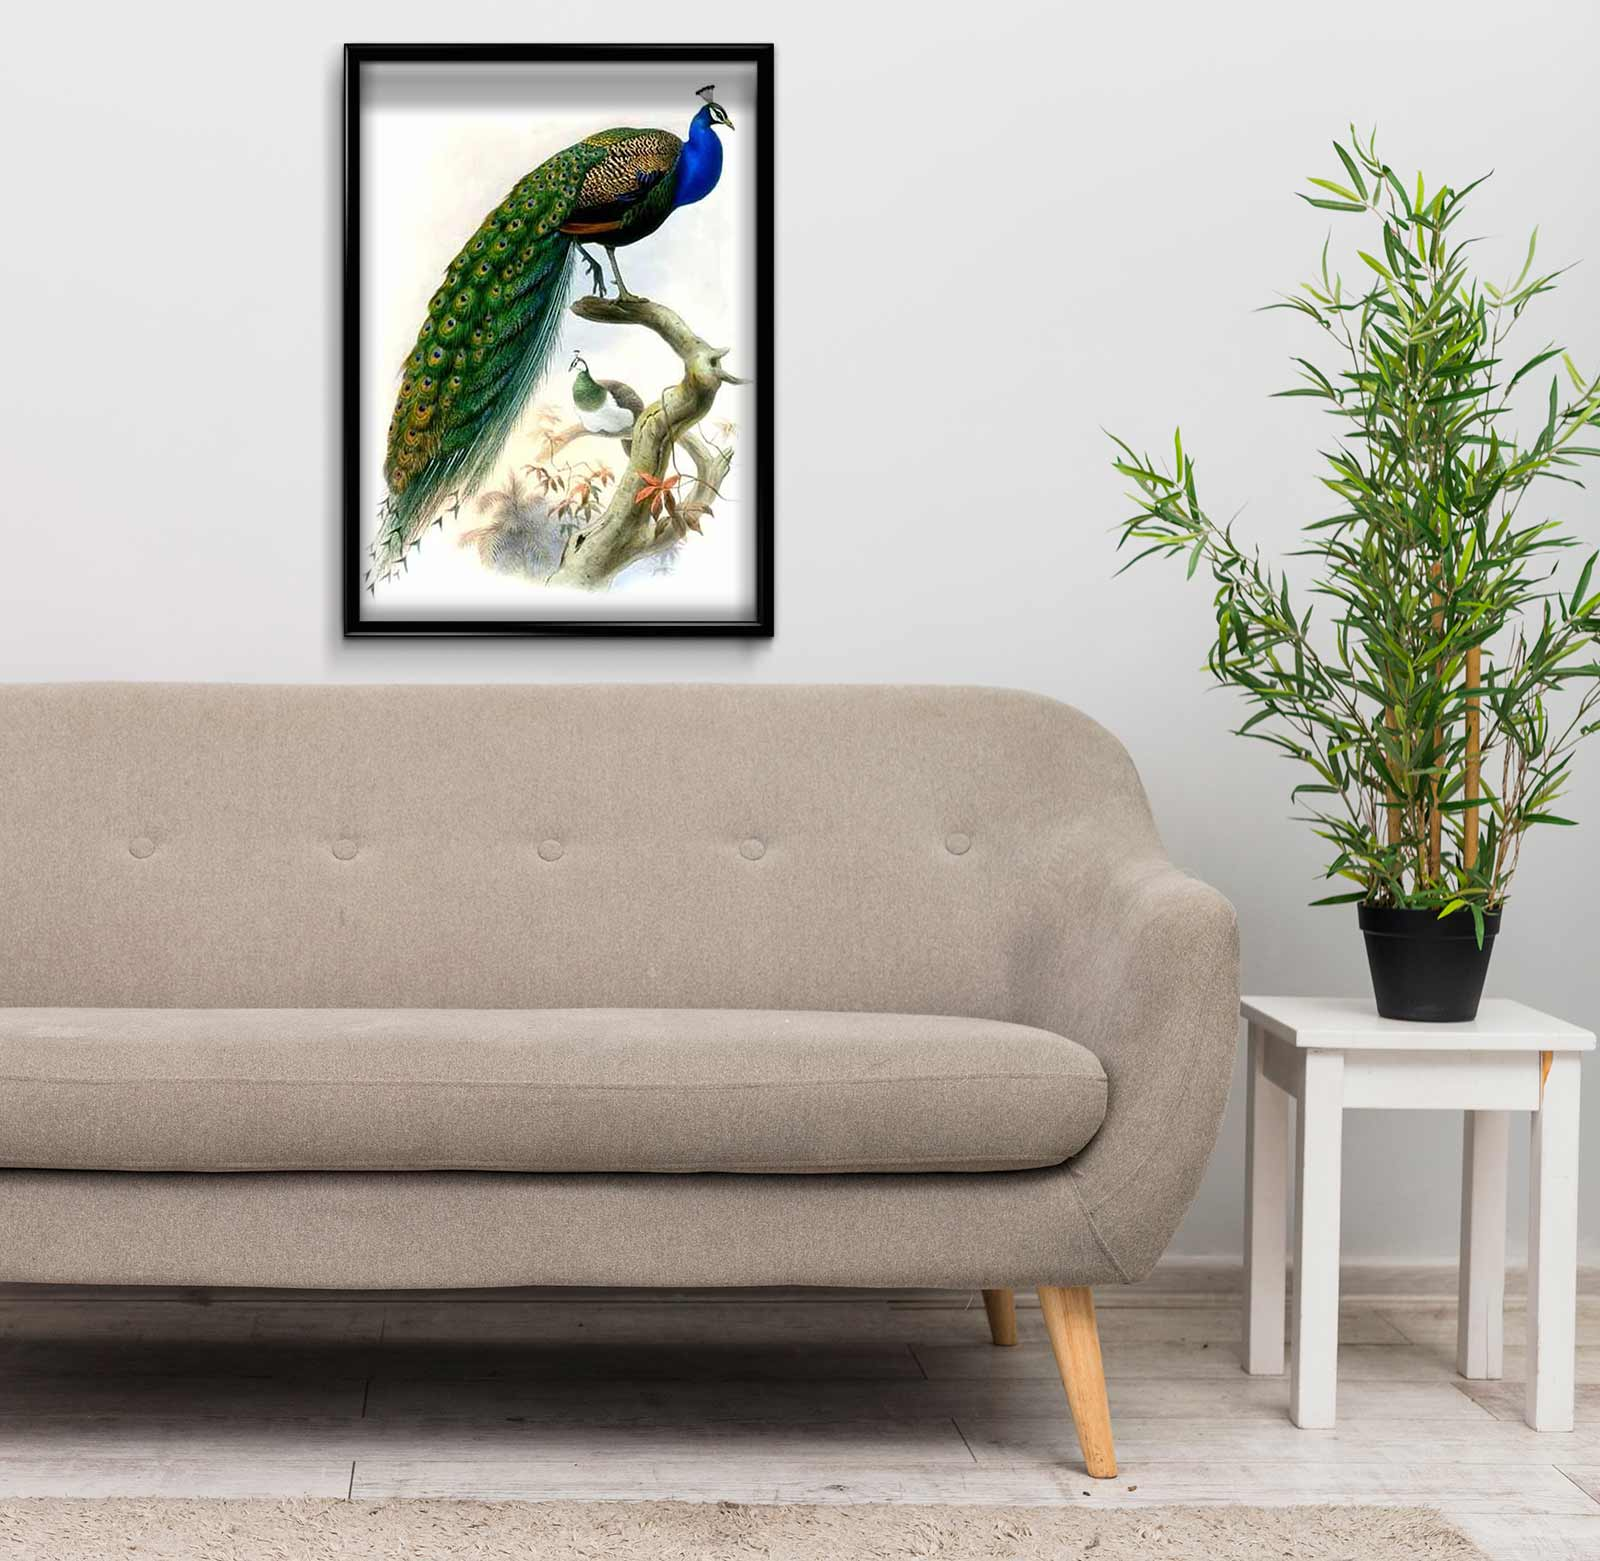 Peacock on a Branch DIY Diamond Painting Kit